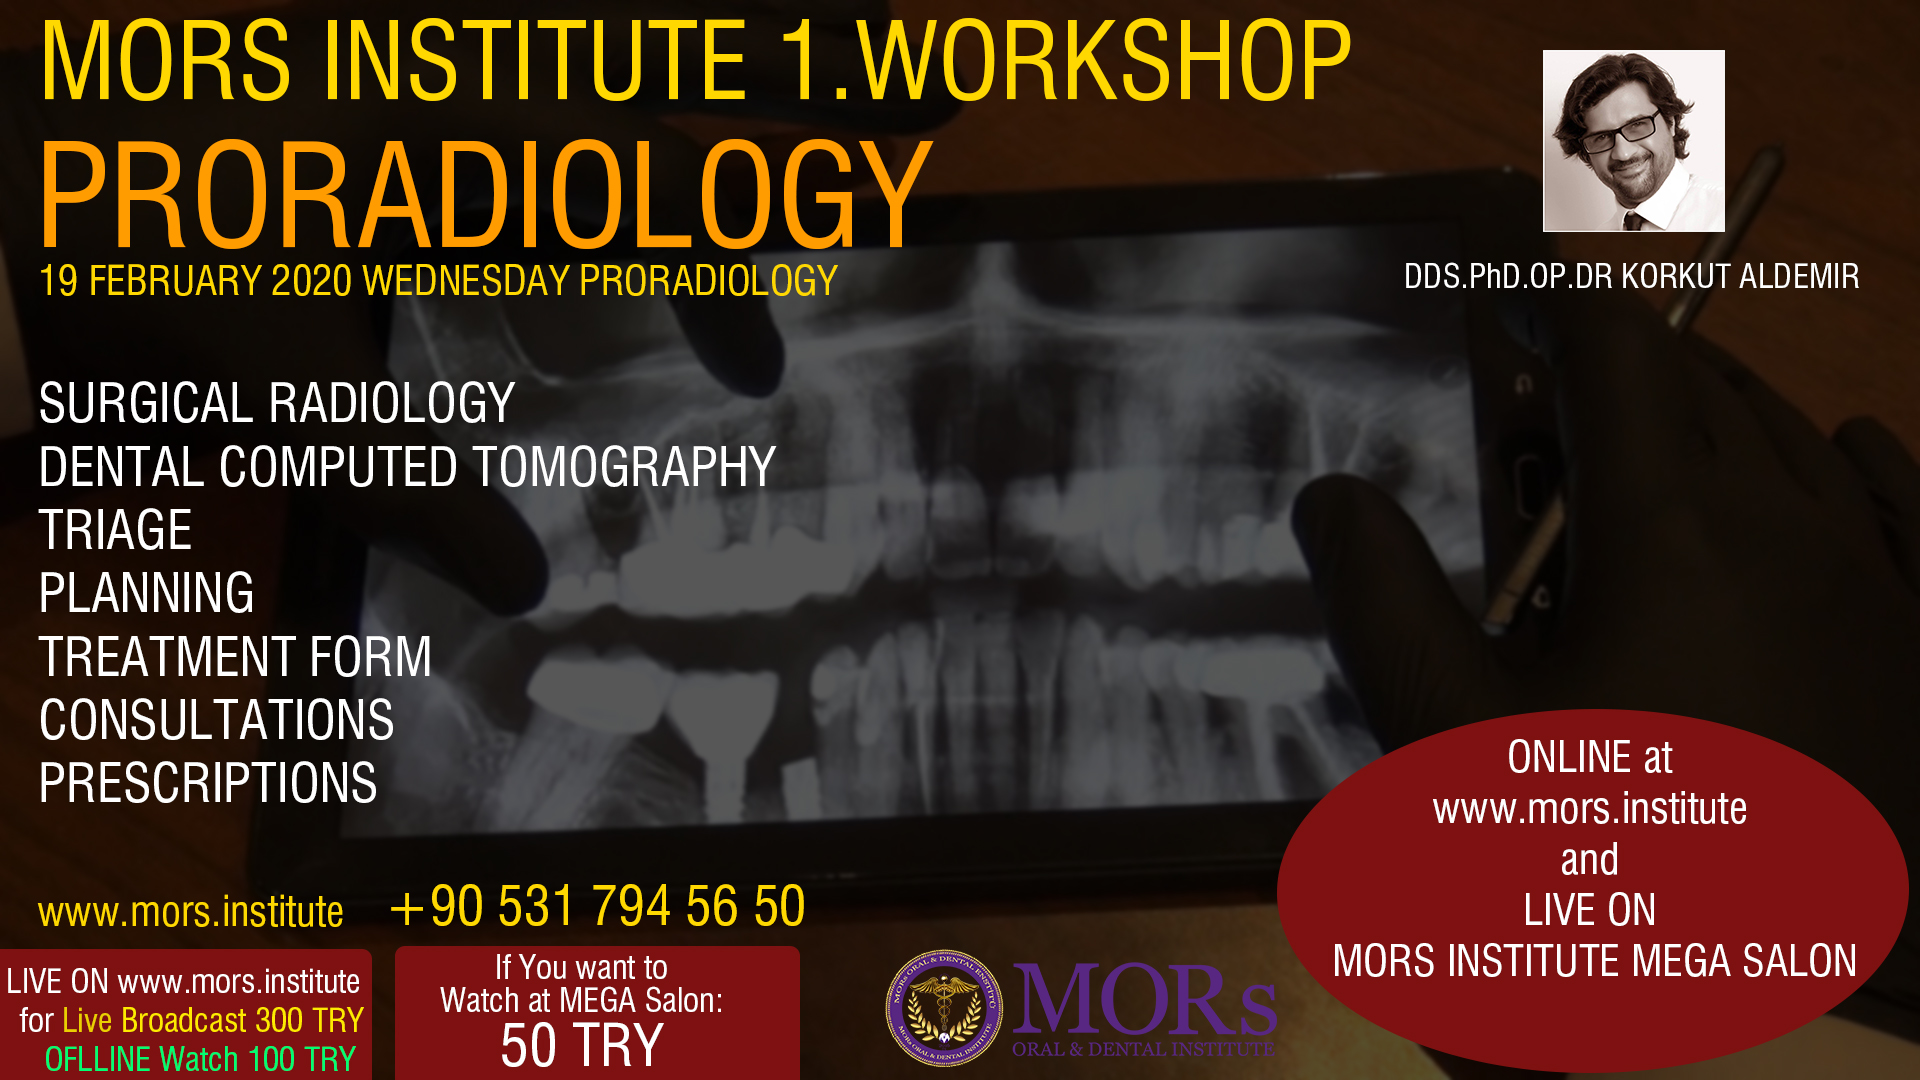 PRORADIOLOGY / MORS INSTITUTE 1.WORKSHOP